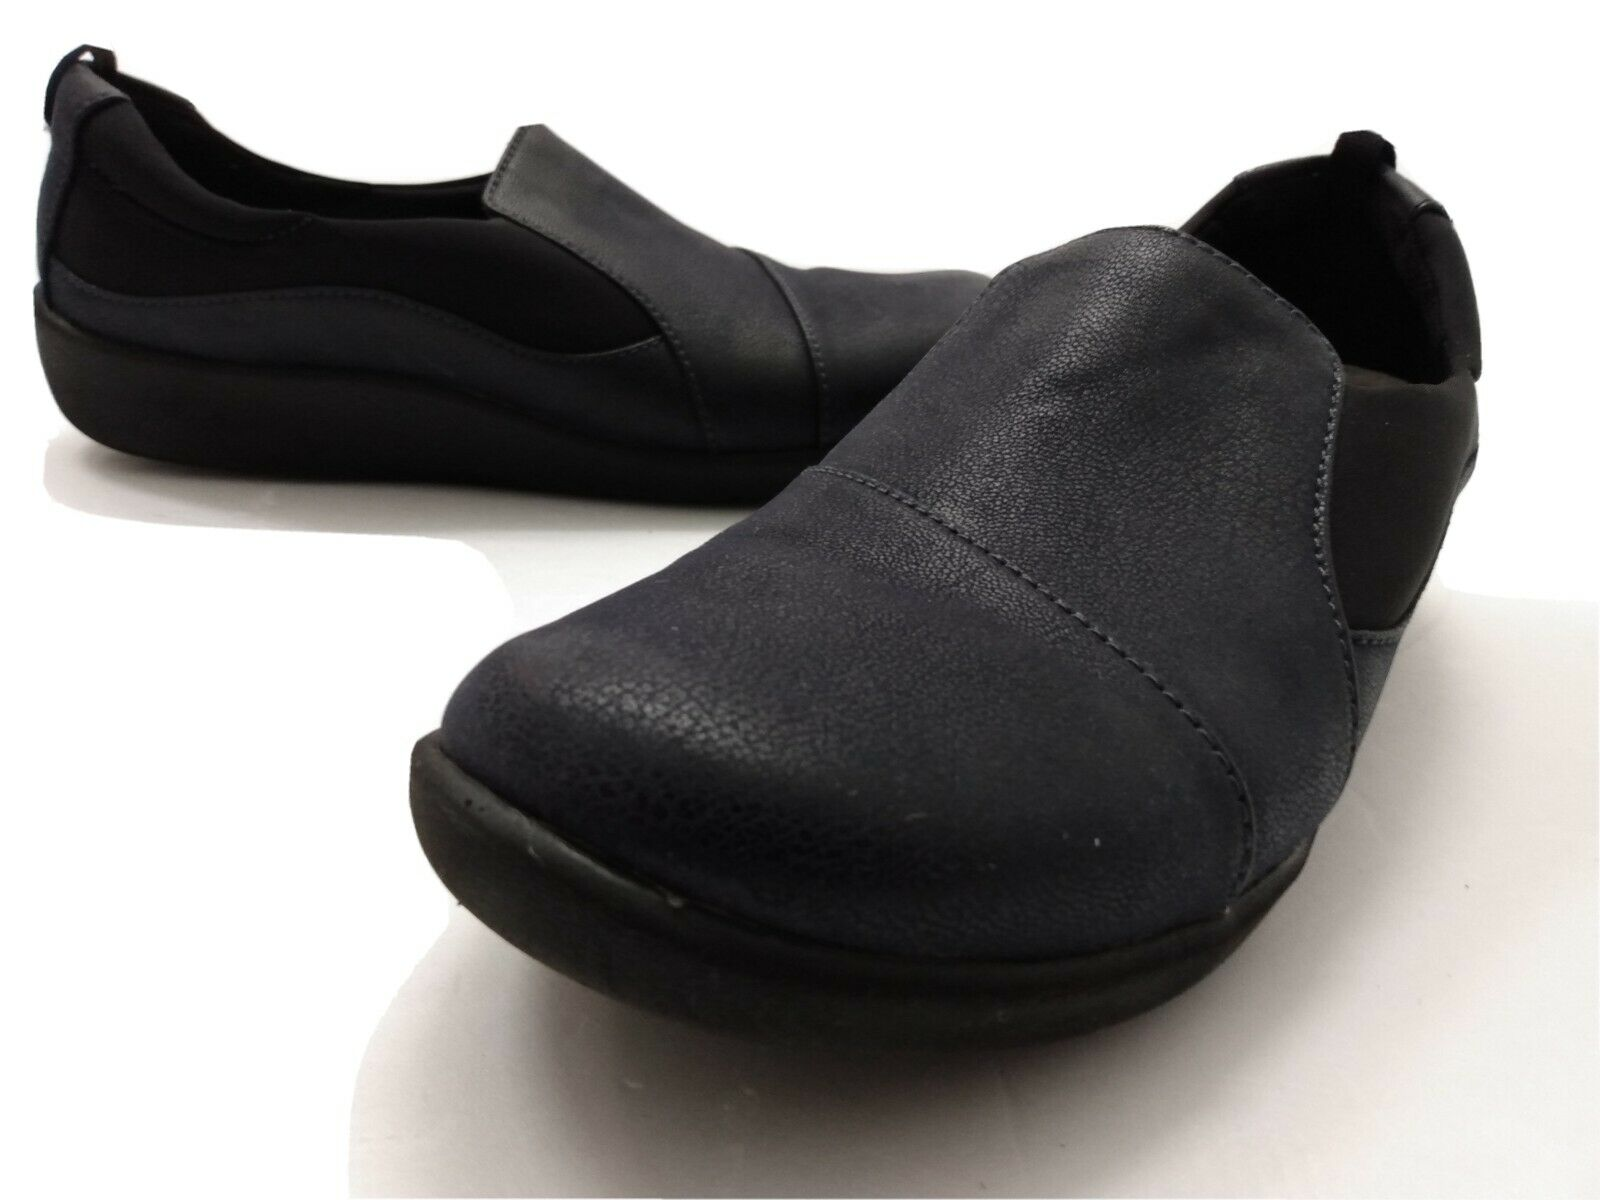 Woman's Clarks Cloudsteppers Slip On Shoes Casual Comfort Walking 9M navy blue